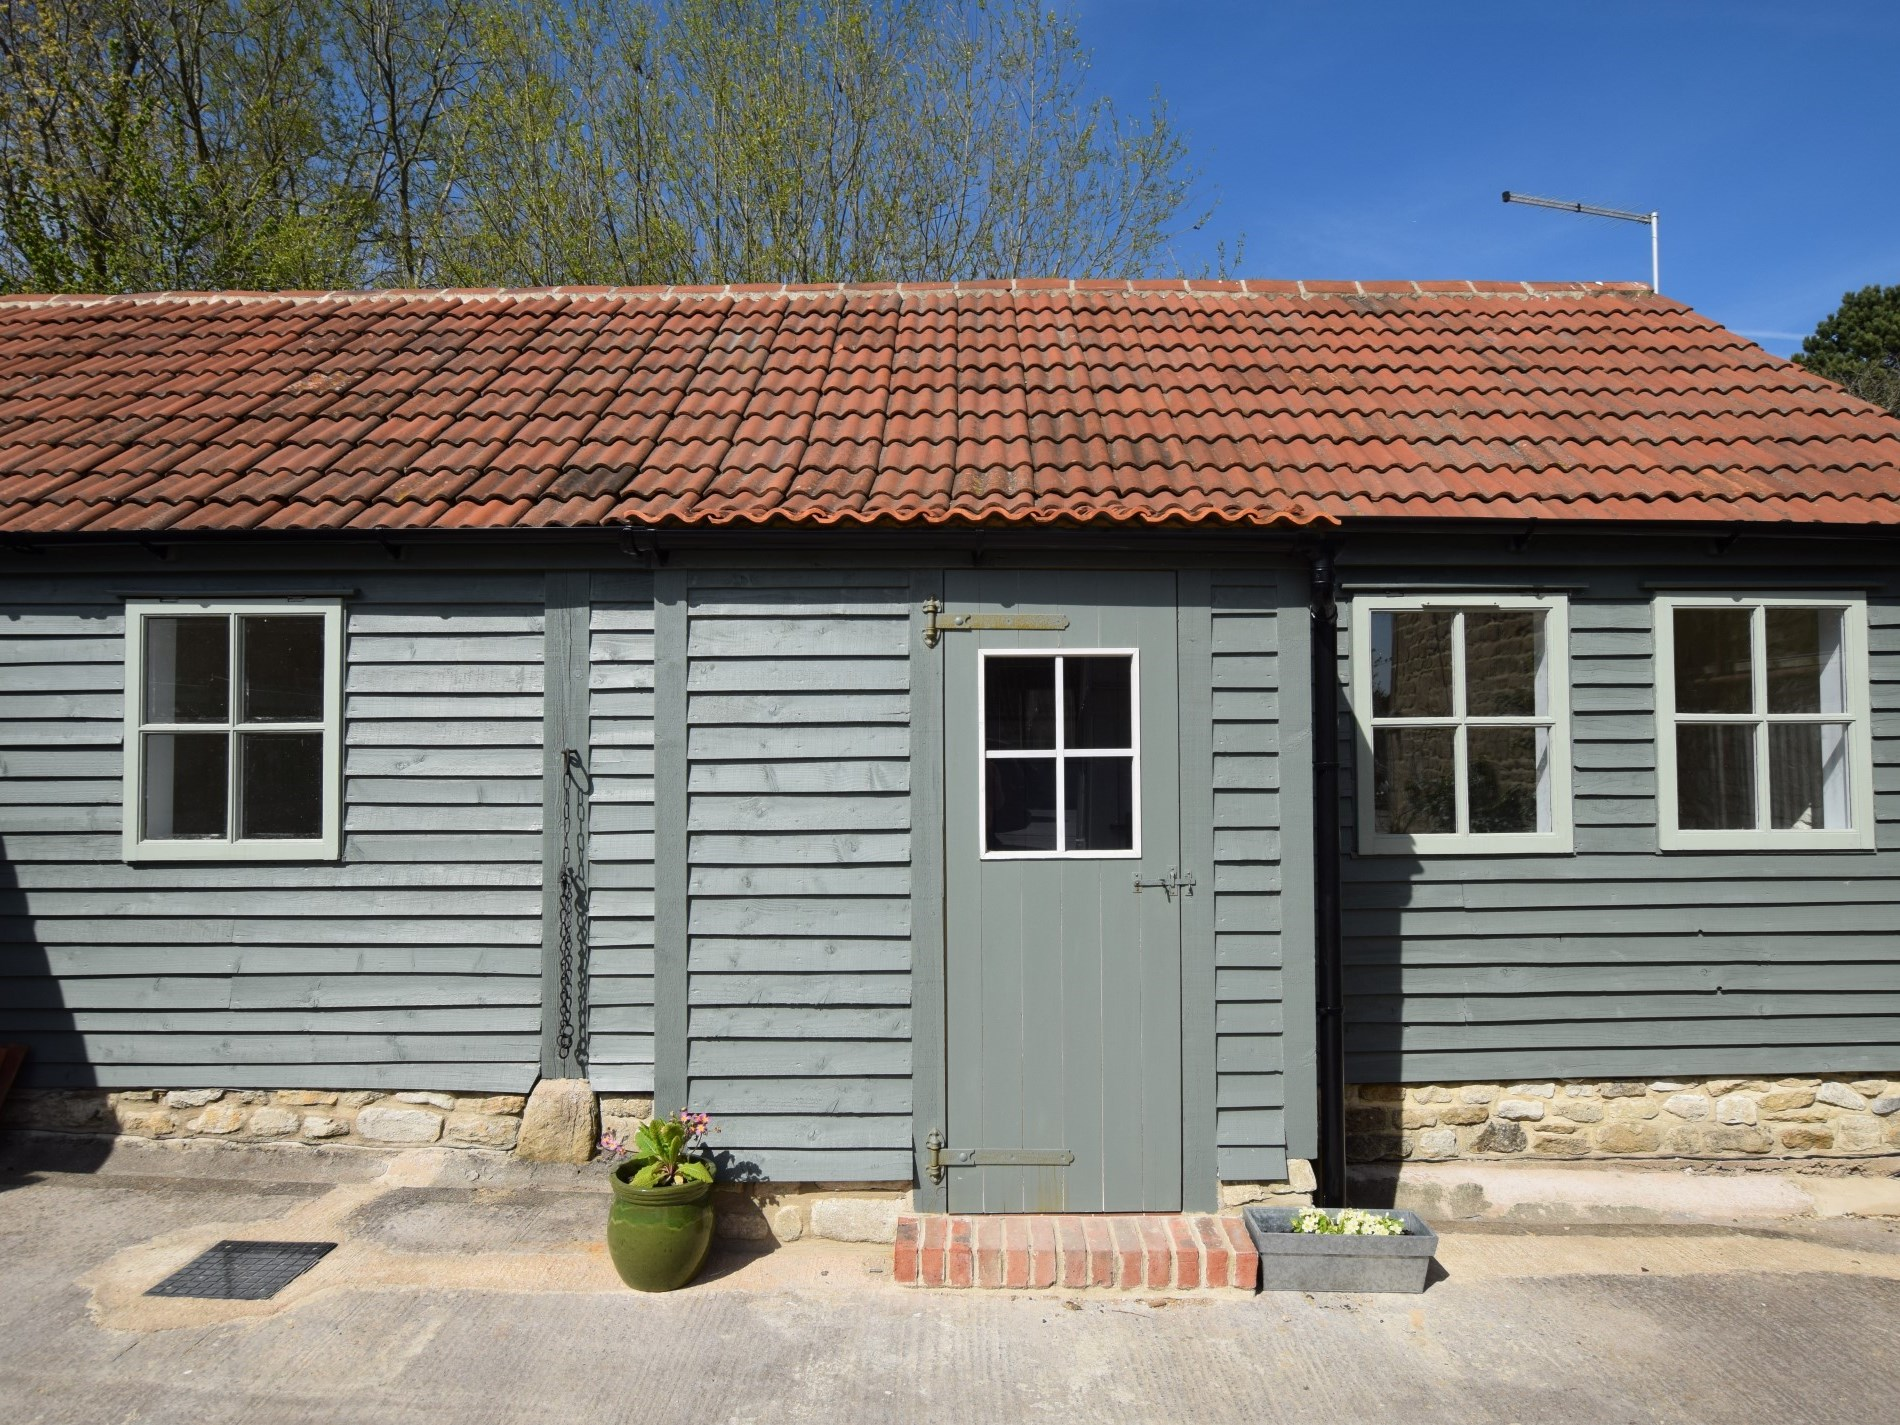 1 Bedroom Cottage in Trowbridge, Dorset and Somerset